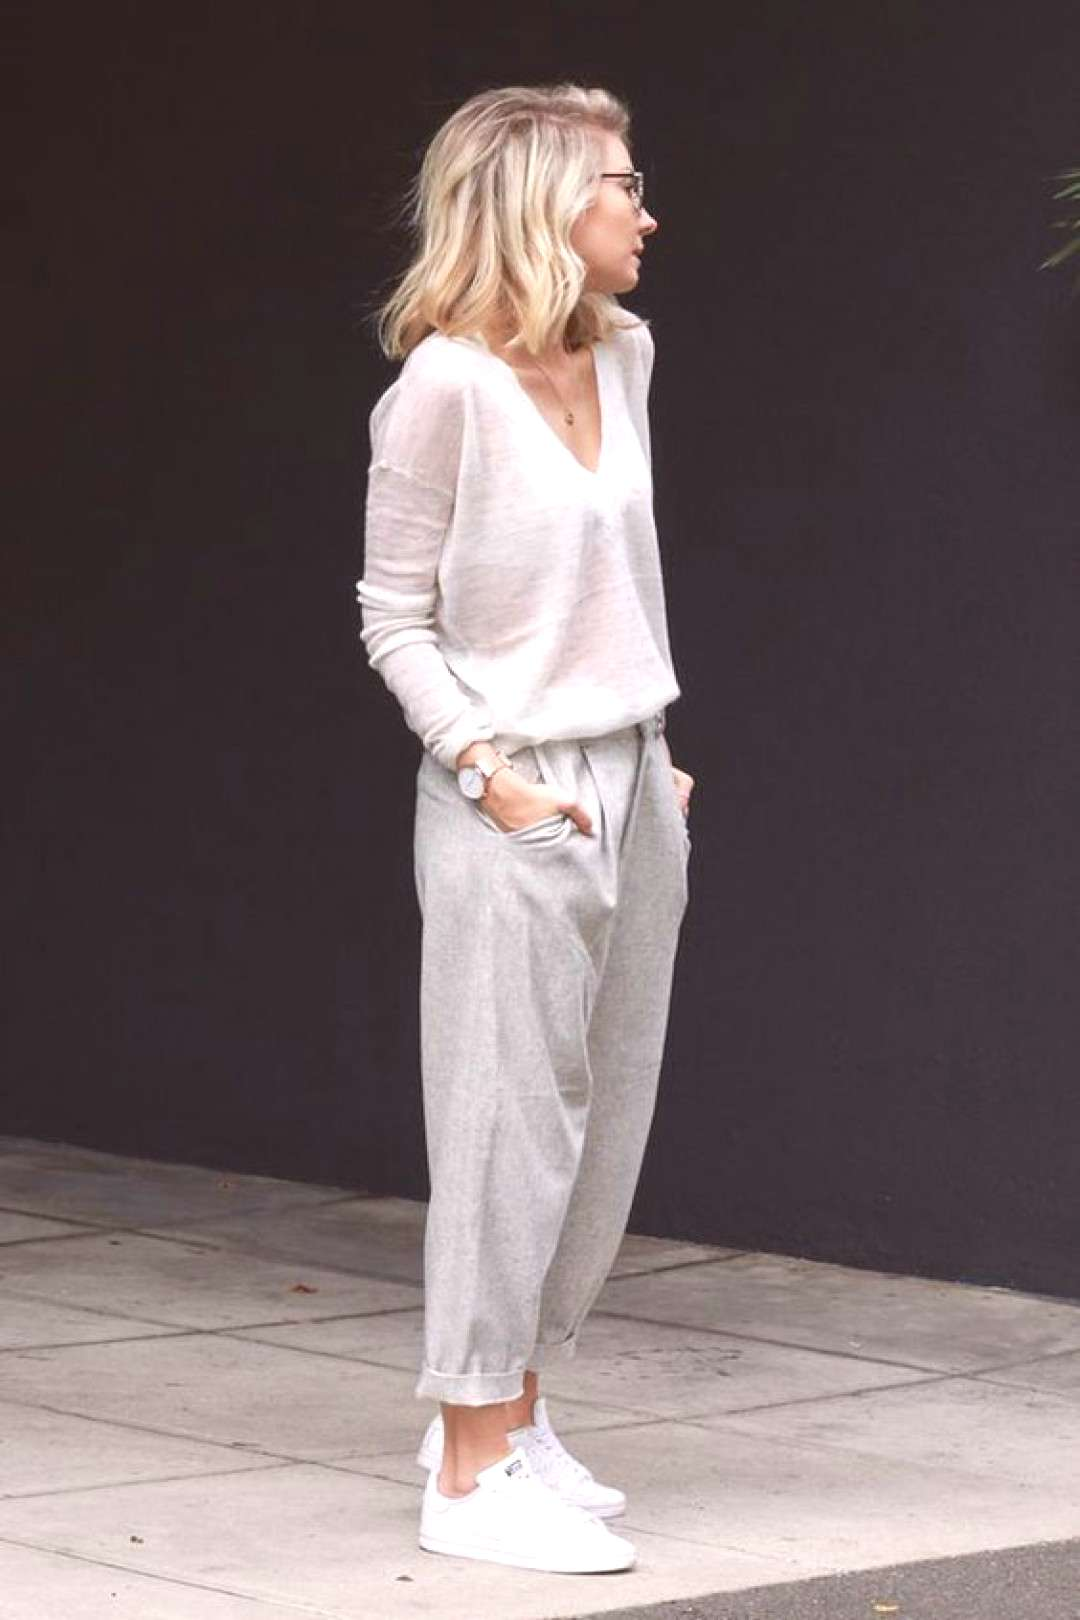 Lovely wispy light grays. Long sleeved v-neck translucent cashmere sweater in a color somewhere bet